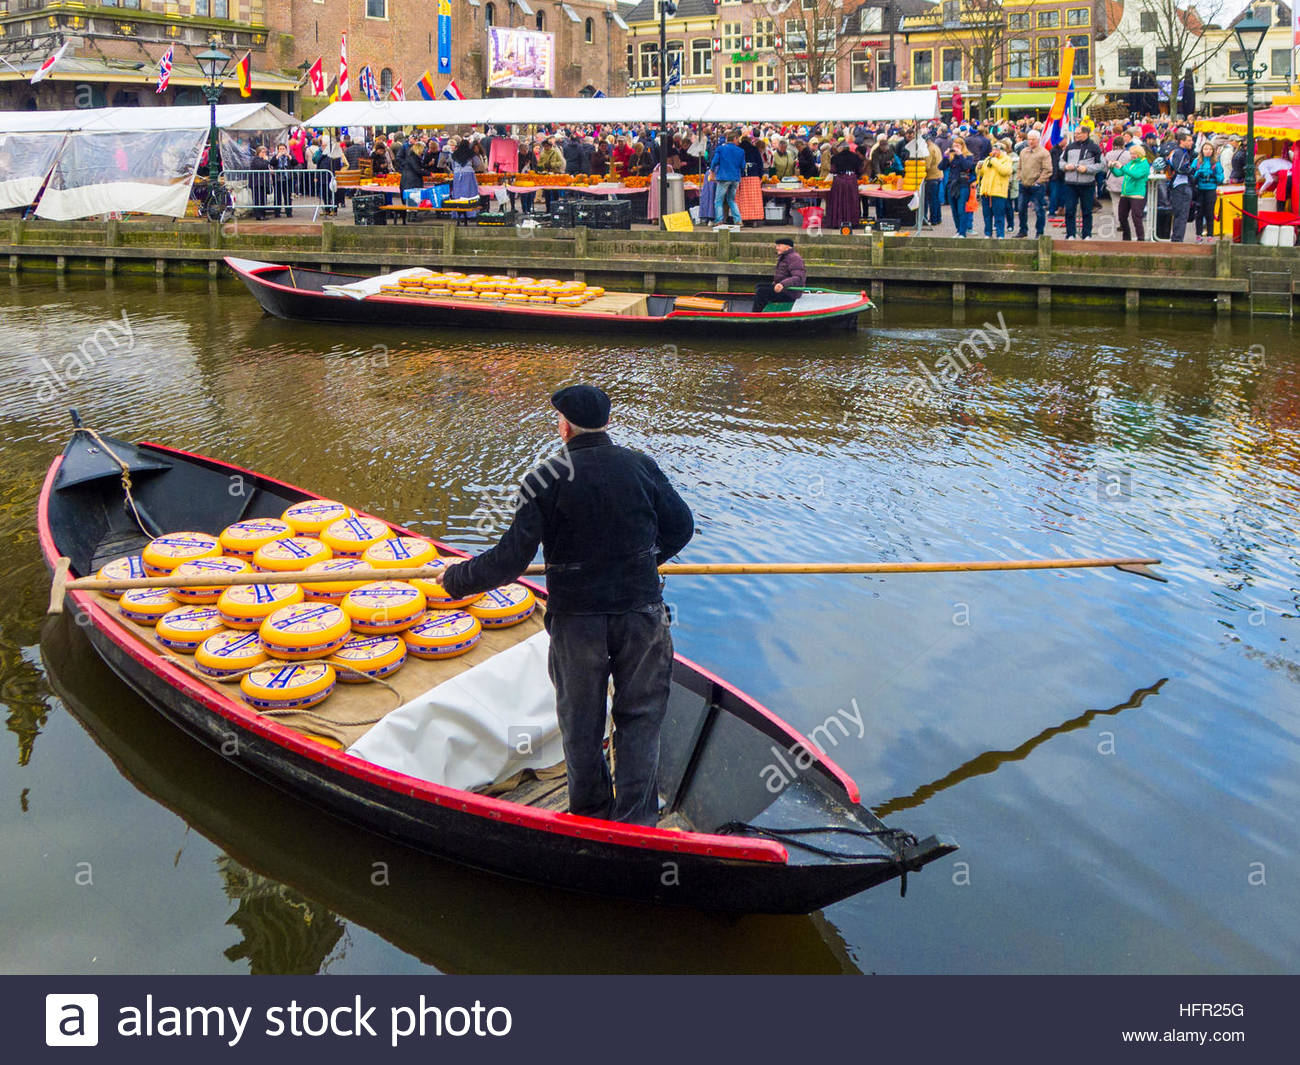 Netherlands, North Holland, Alkmaar. Man delivering yellow wheels of Dutch Cheese, Beemster, by boat to cheese market. - Stock Image